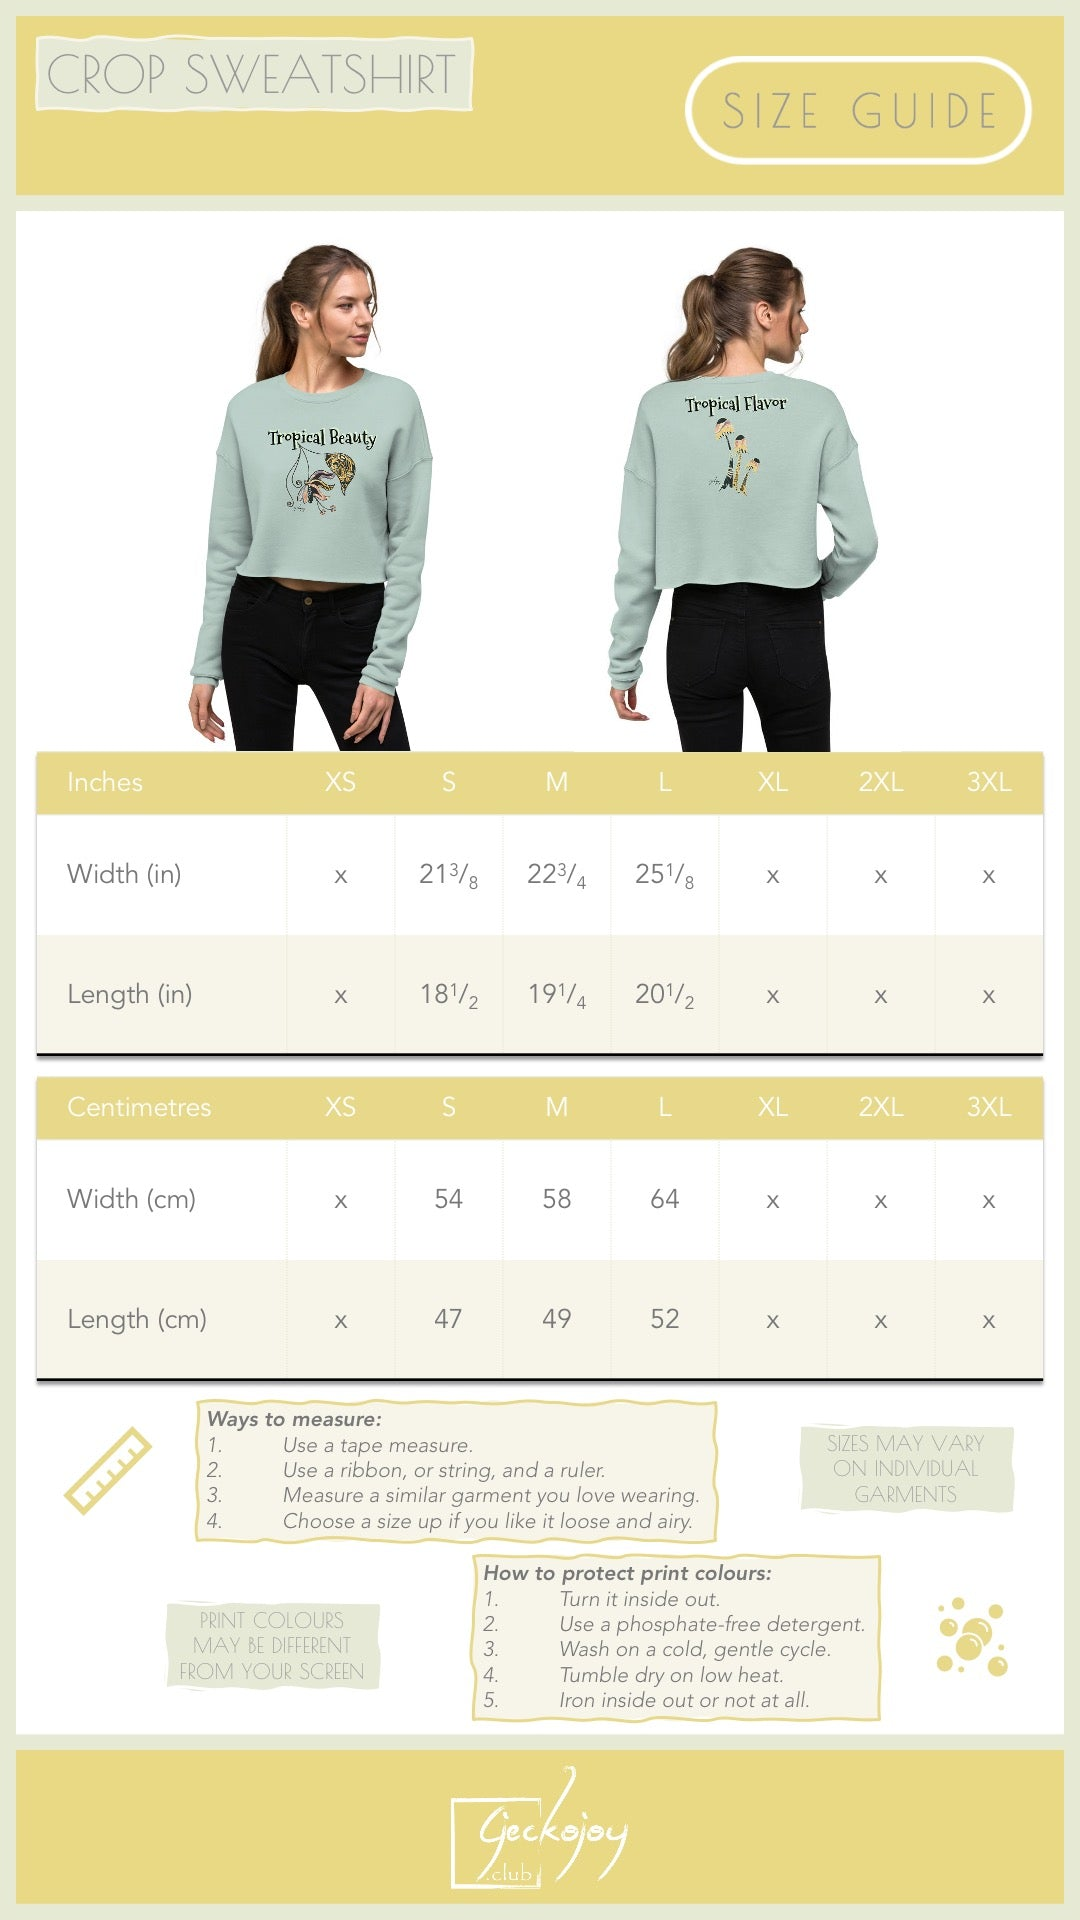 Crop Sweatshirt size guide